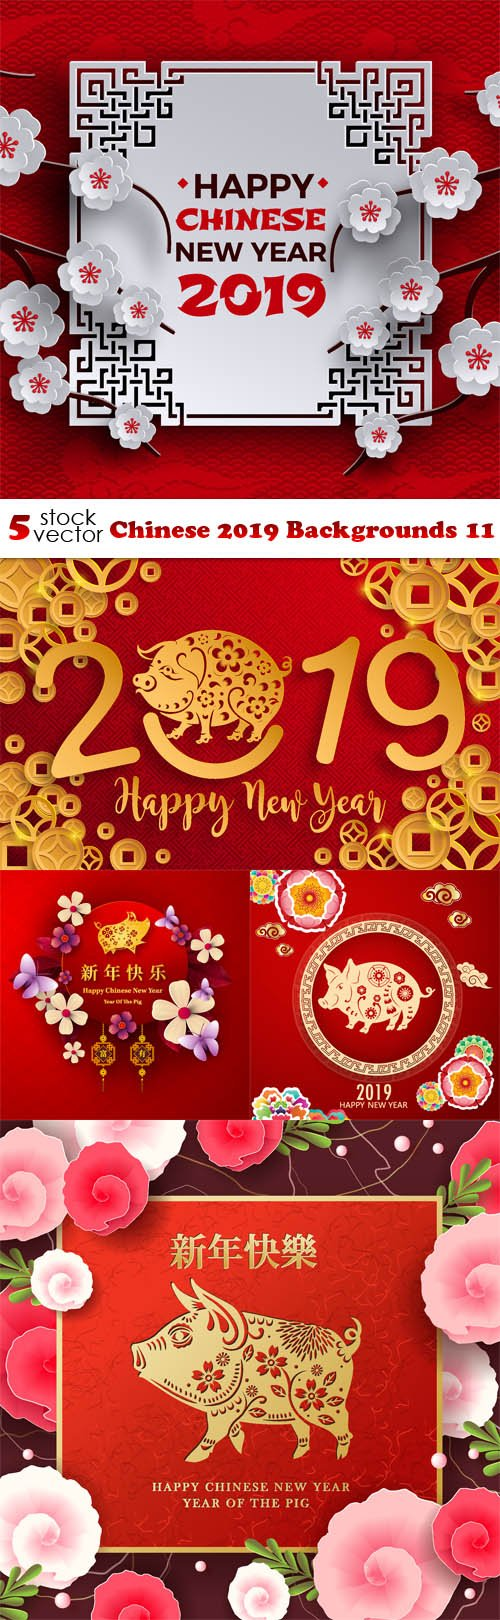 Vectors - Chinese 2019 Backgrounds 11